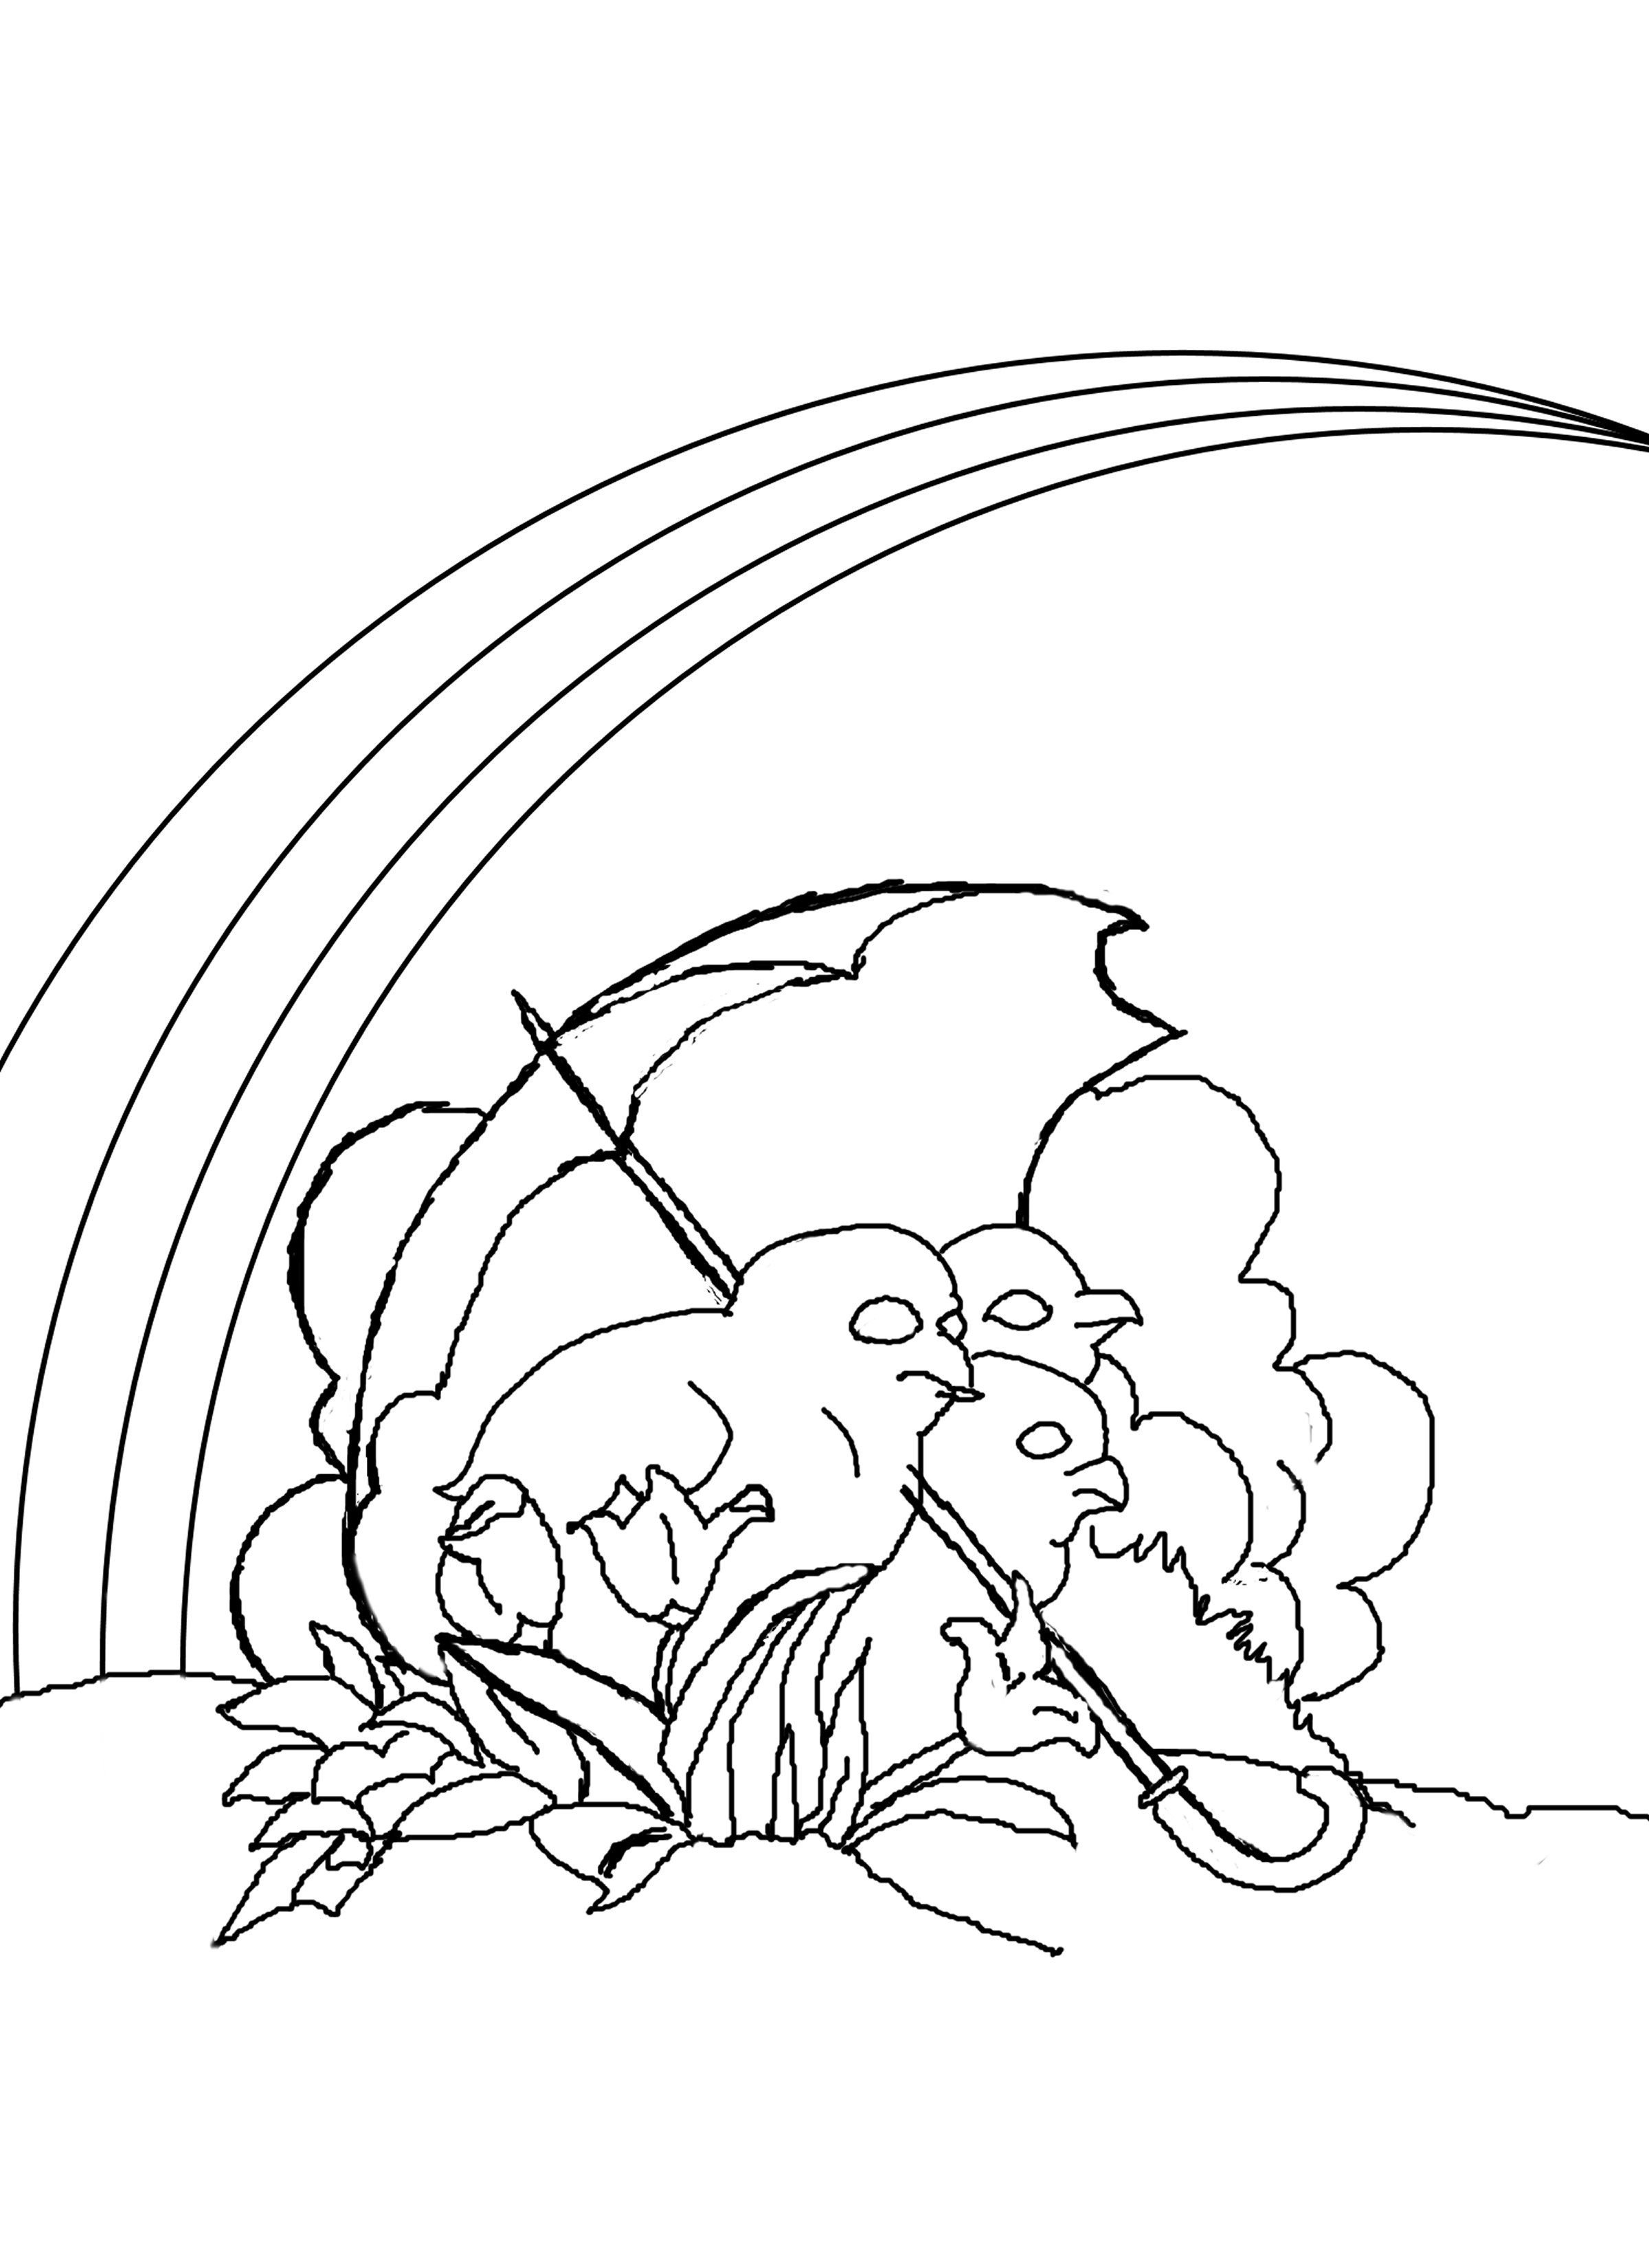 Rainbow Pictures to Print Free Printable Rainbow Coloring Pages for Kids